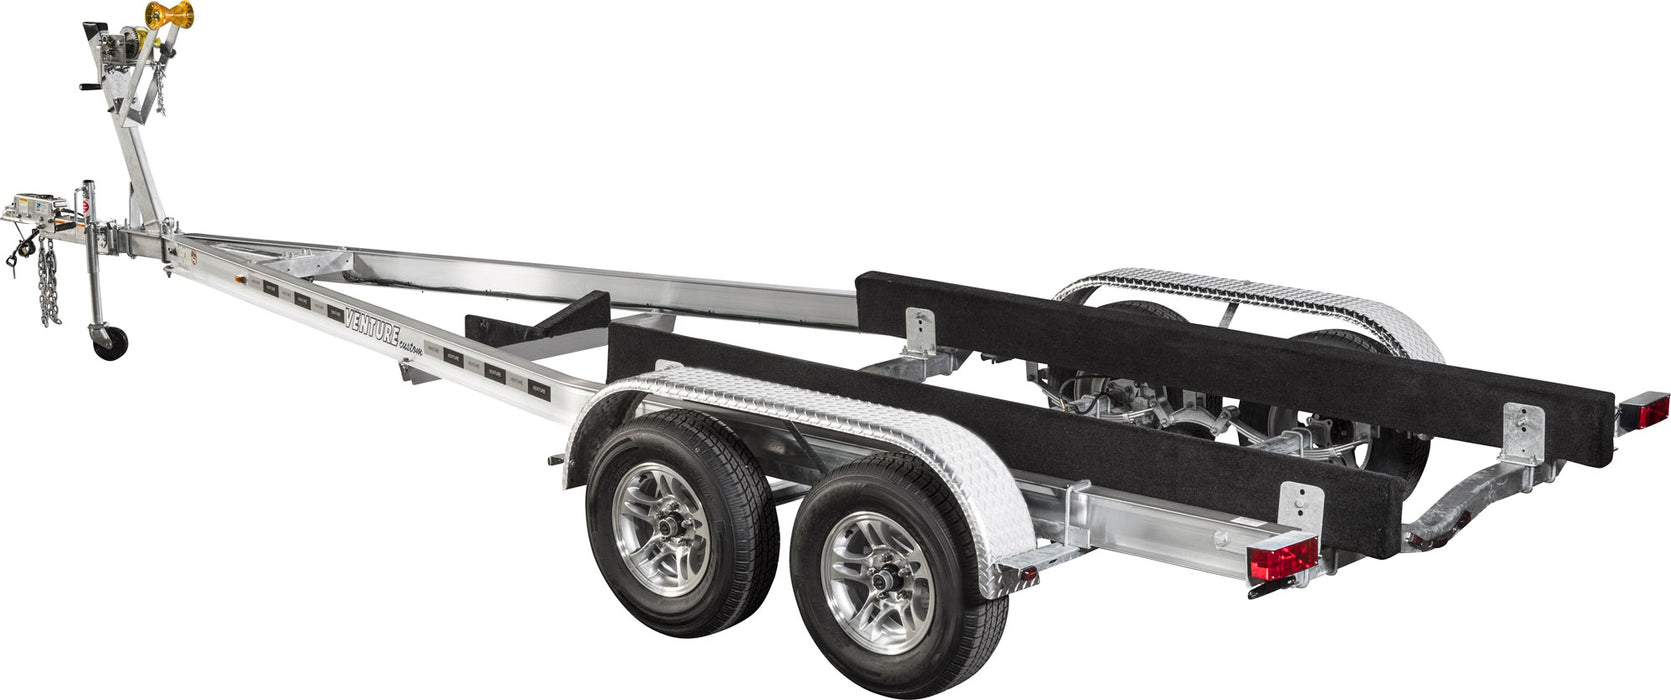 VB1300 – VANTAGE Premium Galvanized Small Boat Trailer